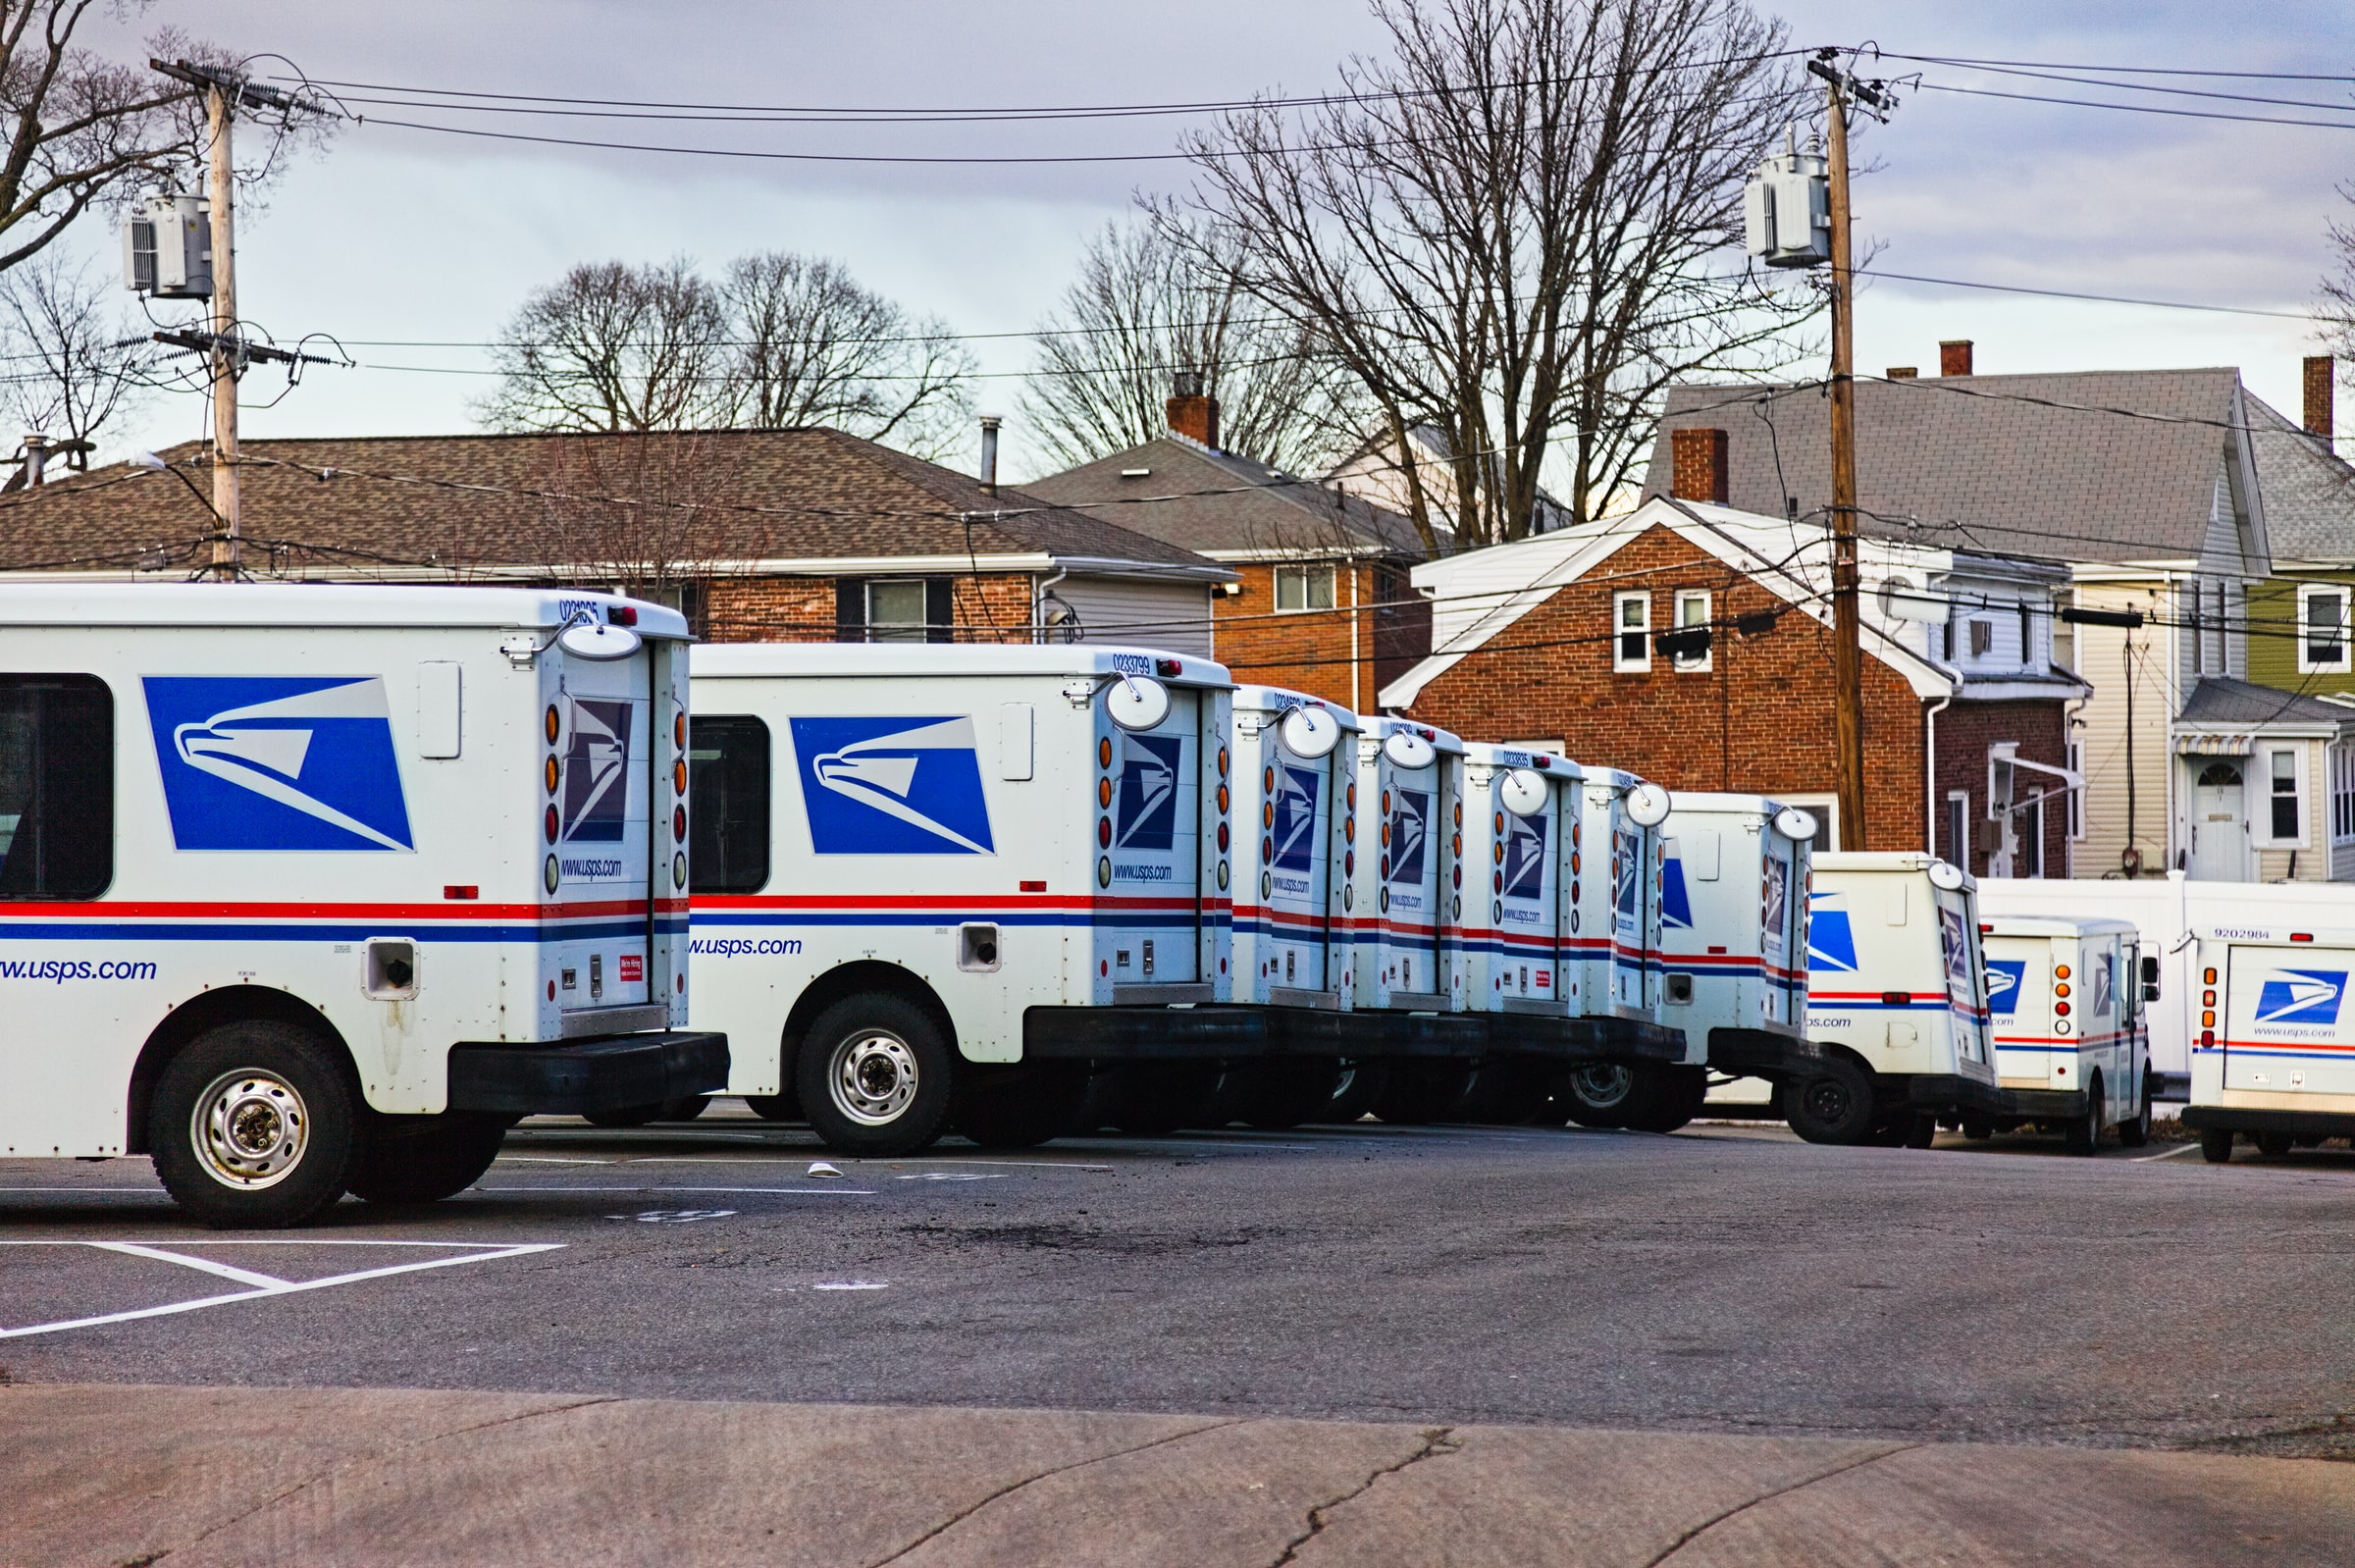 Postmaster General Is Committing to 10% of USPS Fleet Going Electric